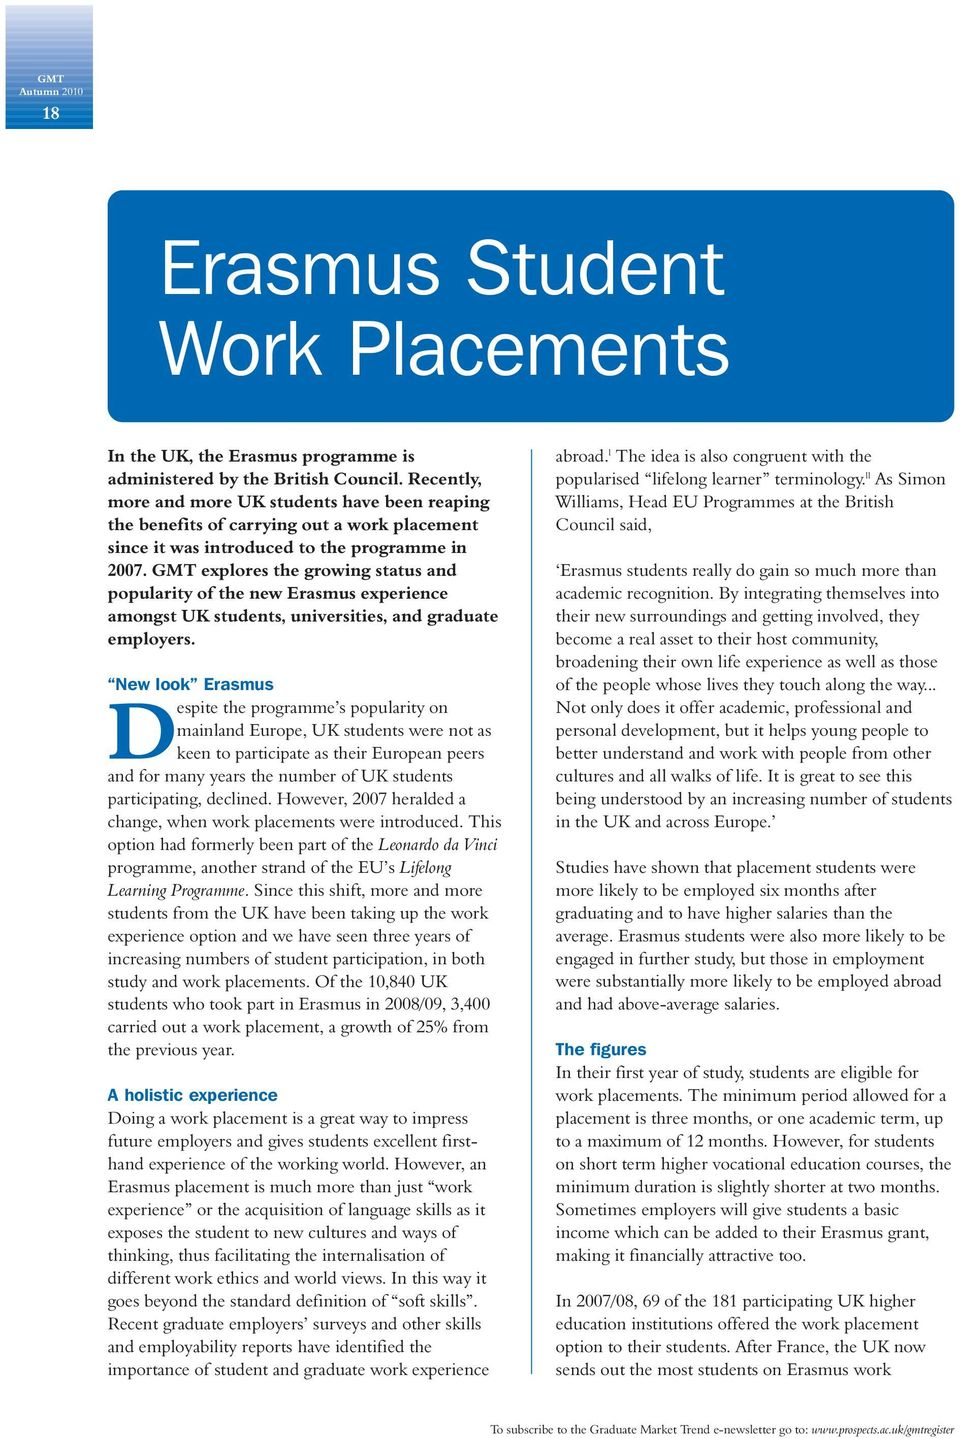 GMT explores the growing status and popularity of the new Erasmus experience amongst UK students, universities, and graduate employers.